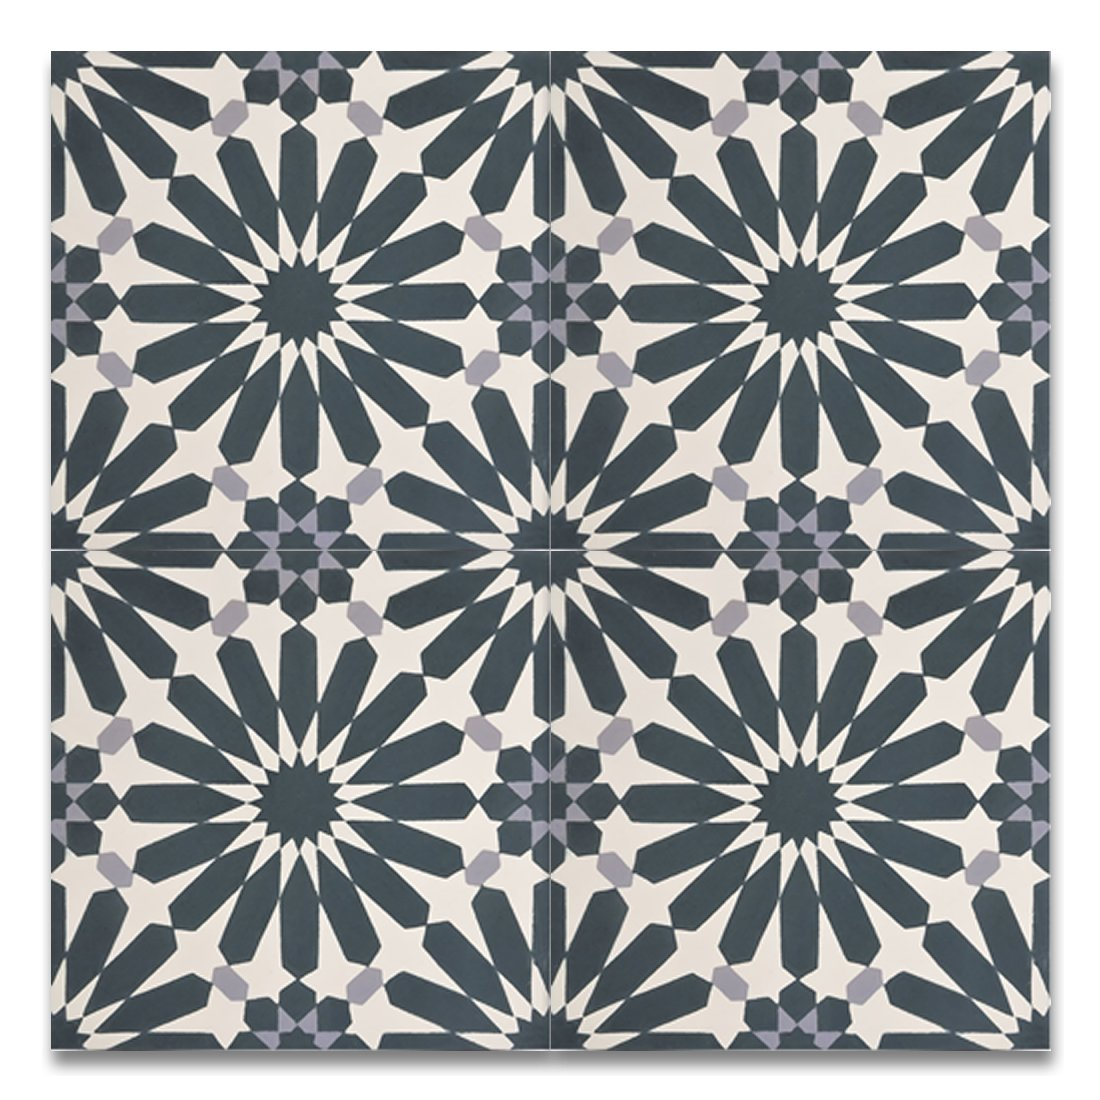 Moroccan Mosaic & Tile House CTP54-03 Alhambra 8''x8'' Handmade Cement Tile in Navy Blue and Gray(Pack of 12), Navy BlueWhiteGray by Moroccan Mosaic & Tile House